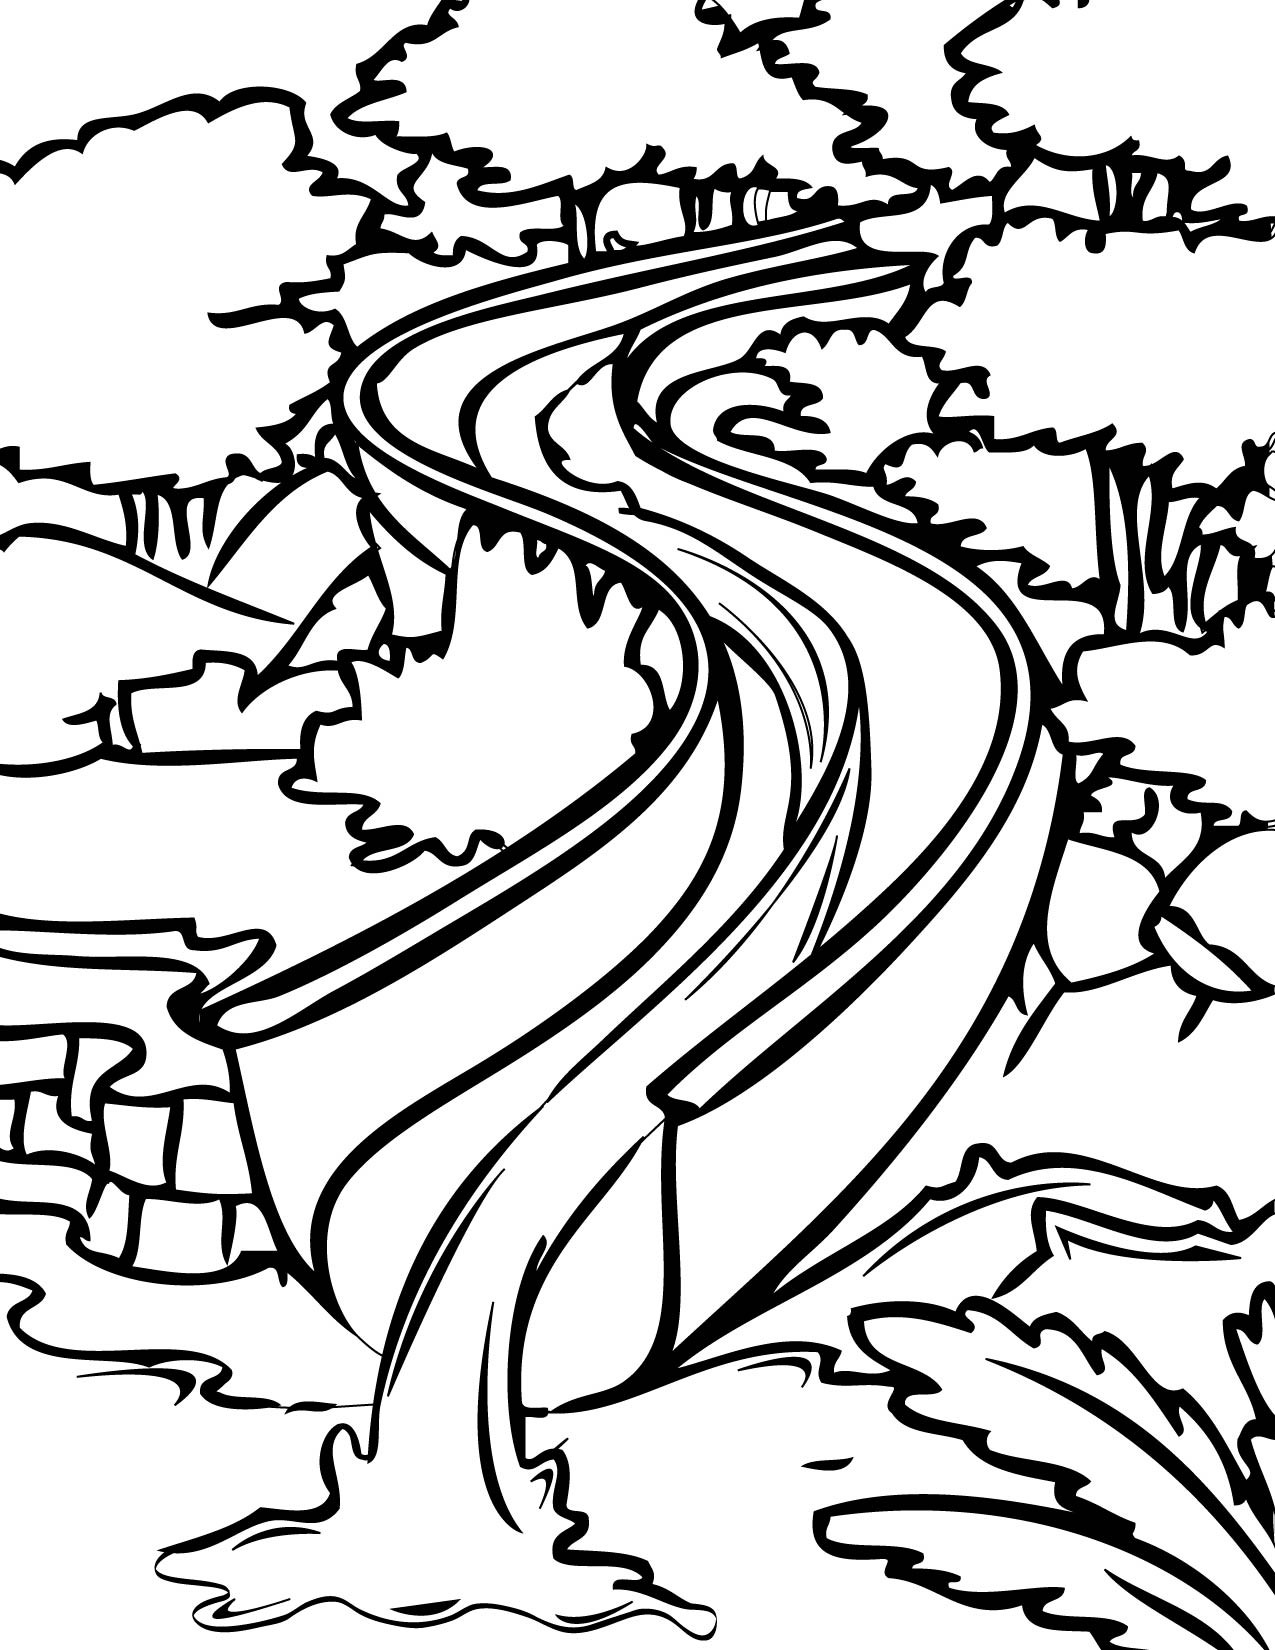 Best Water Slide Clip Art 12692